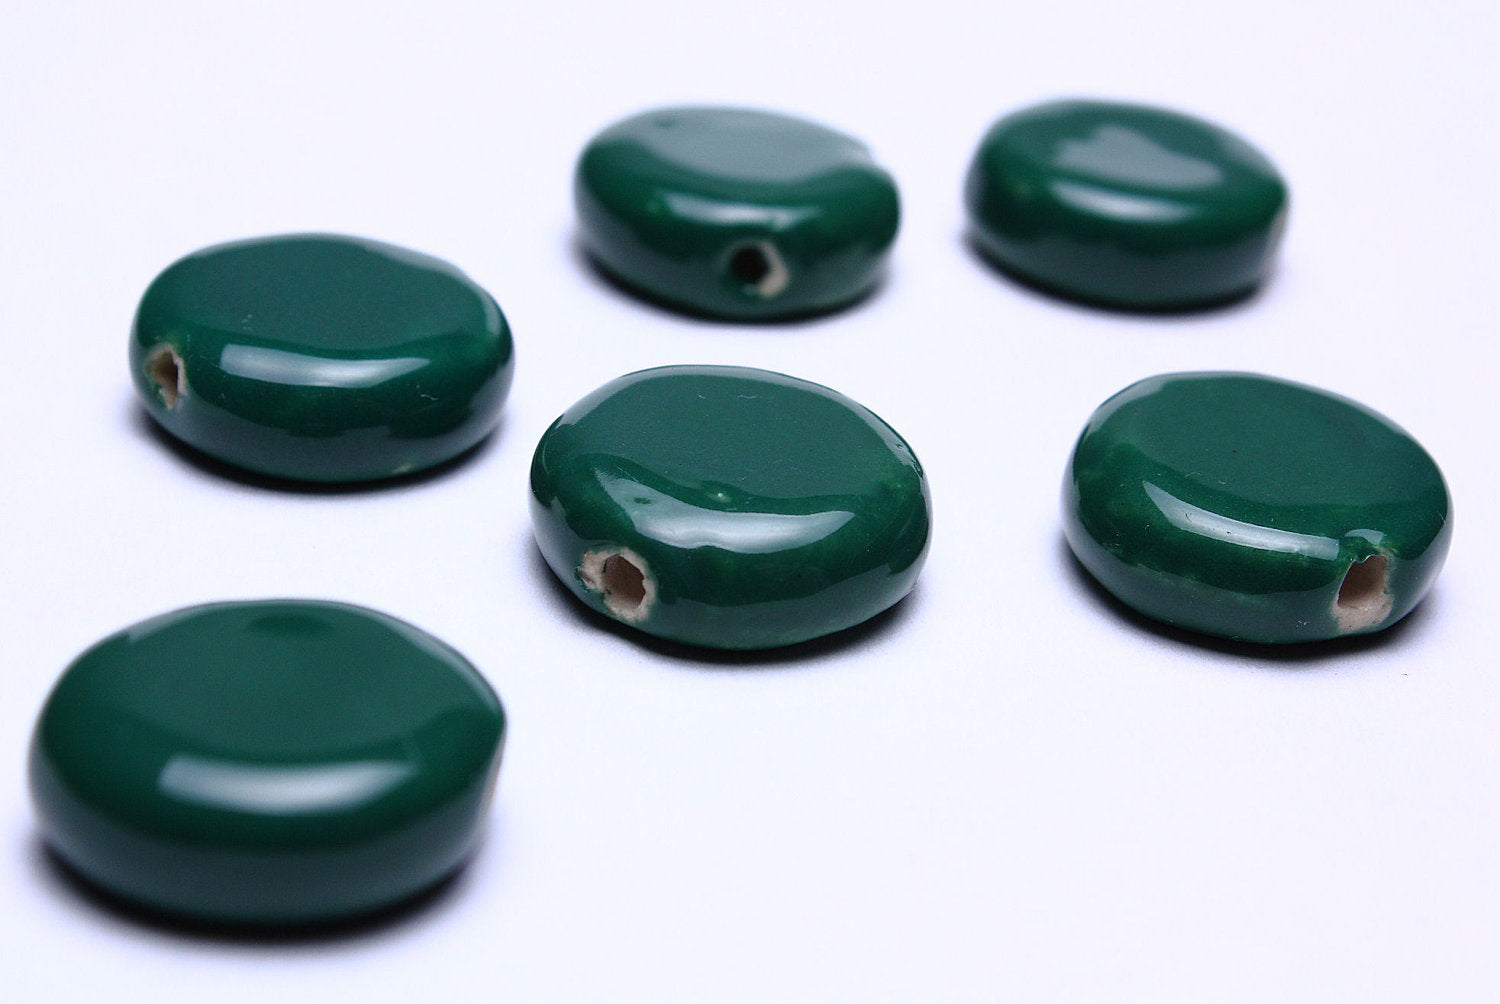 16mm green handmade beads - Green bright glazed porcelain beads - disk flat round beads - 6 pieces (568)